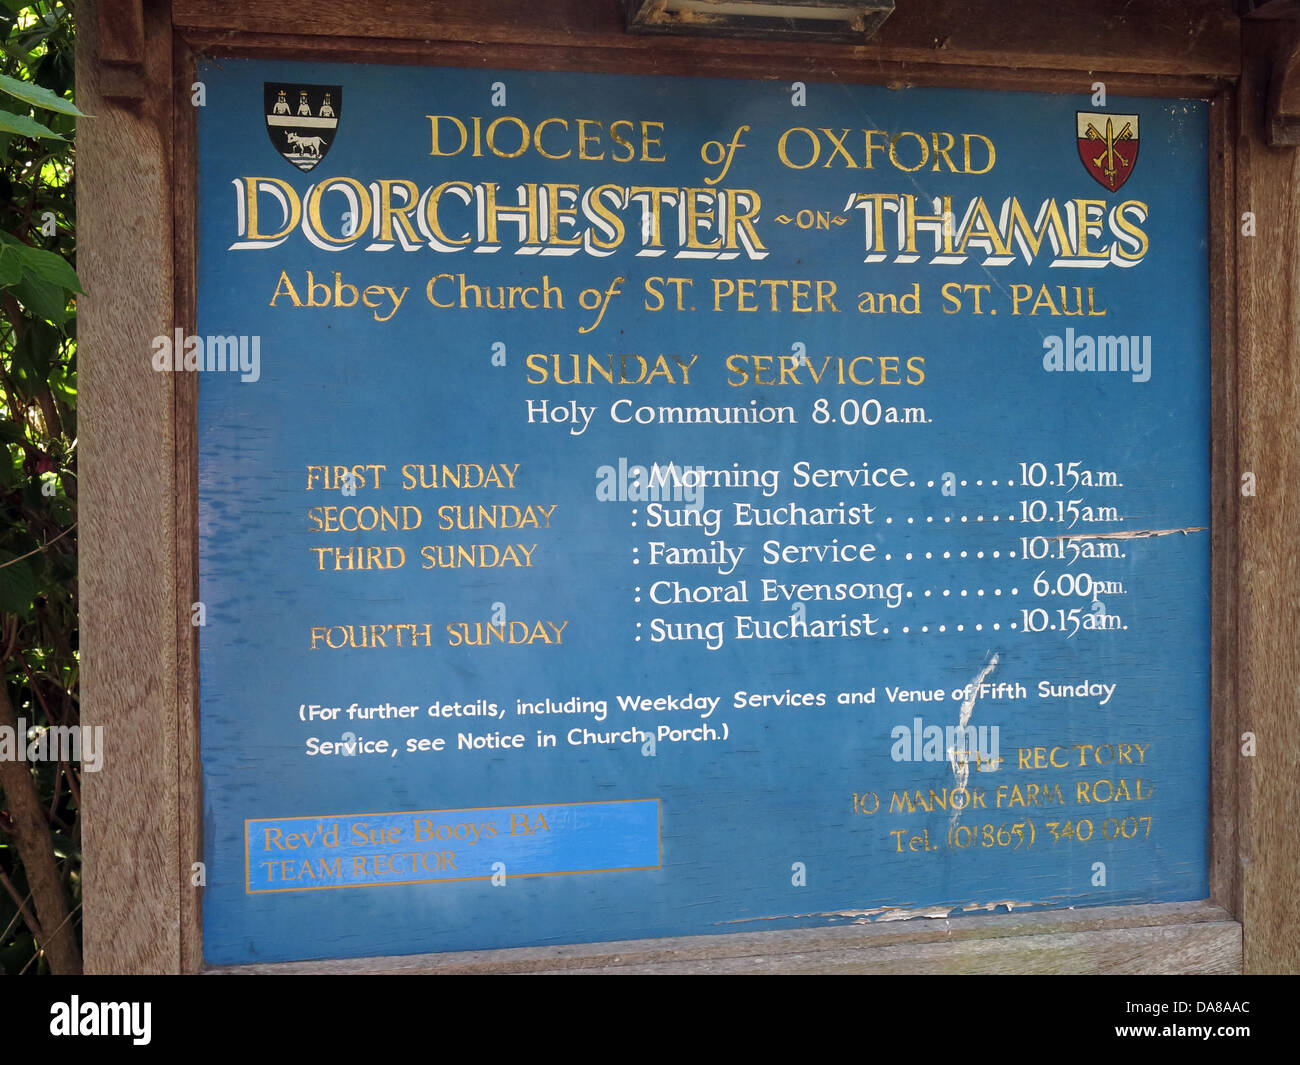 Beautiful Dorchester On Thames Abbey Church of St Peter & St Paul, front sunday services sign - Stock Image